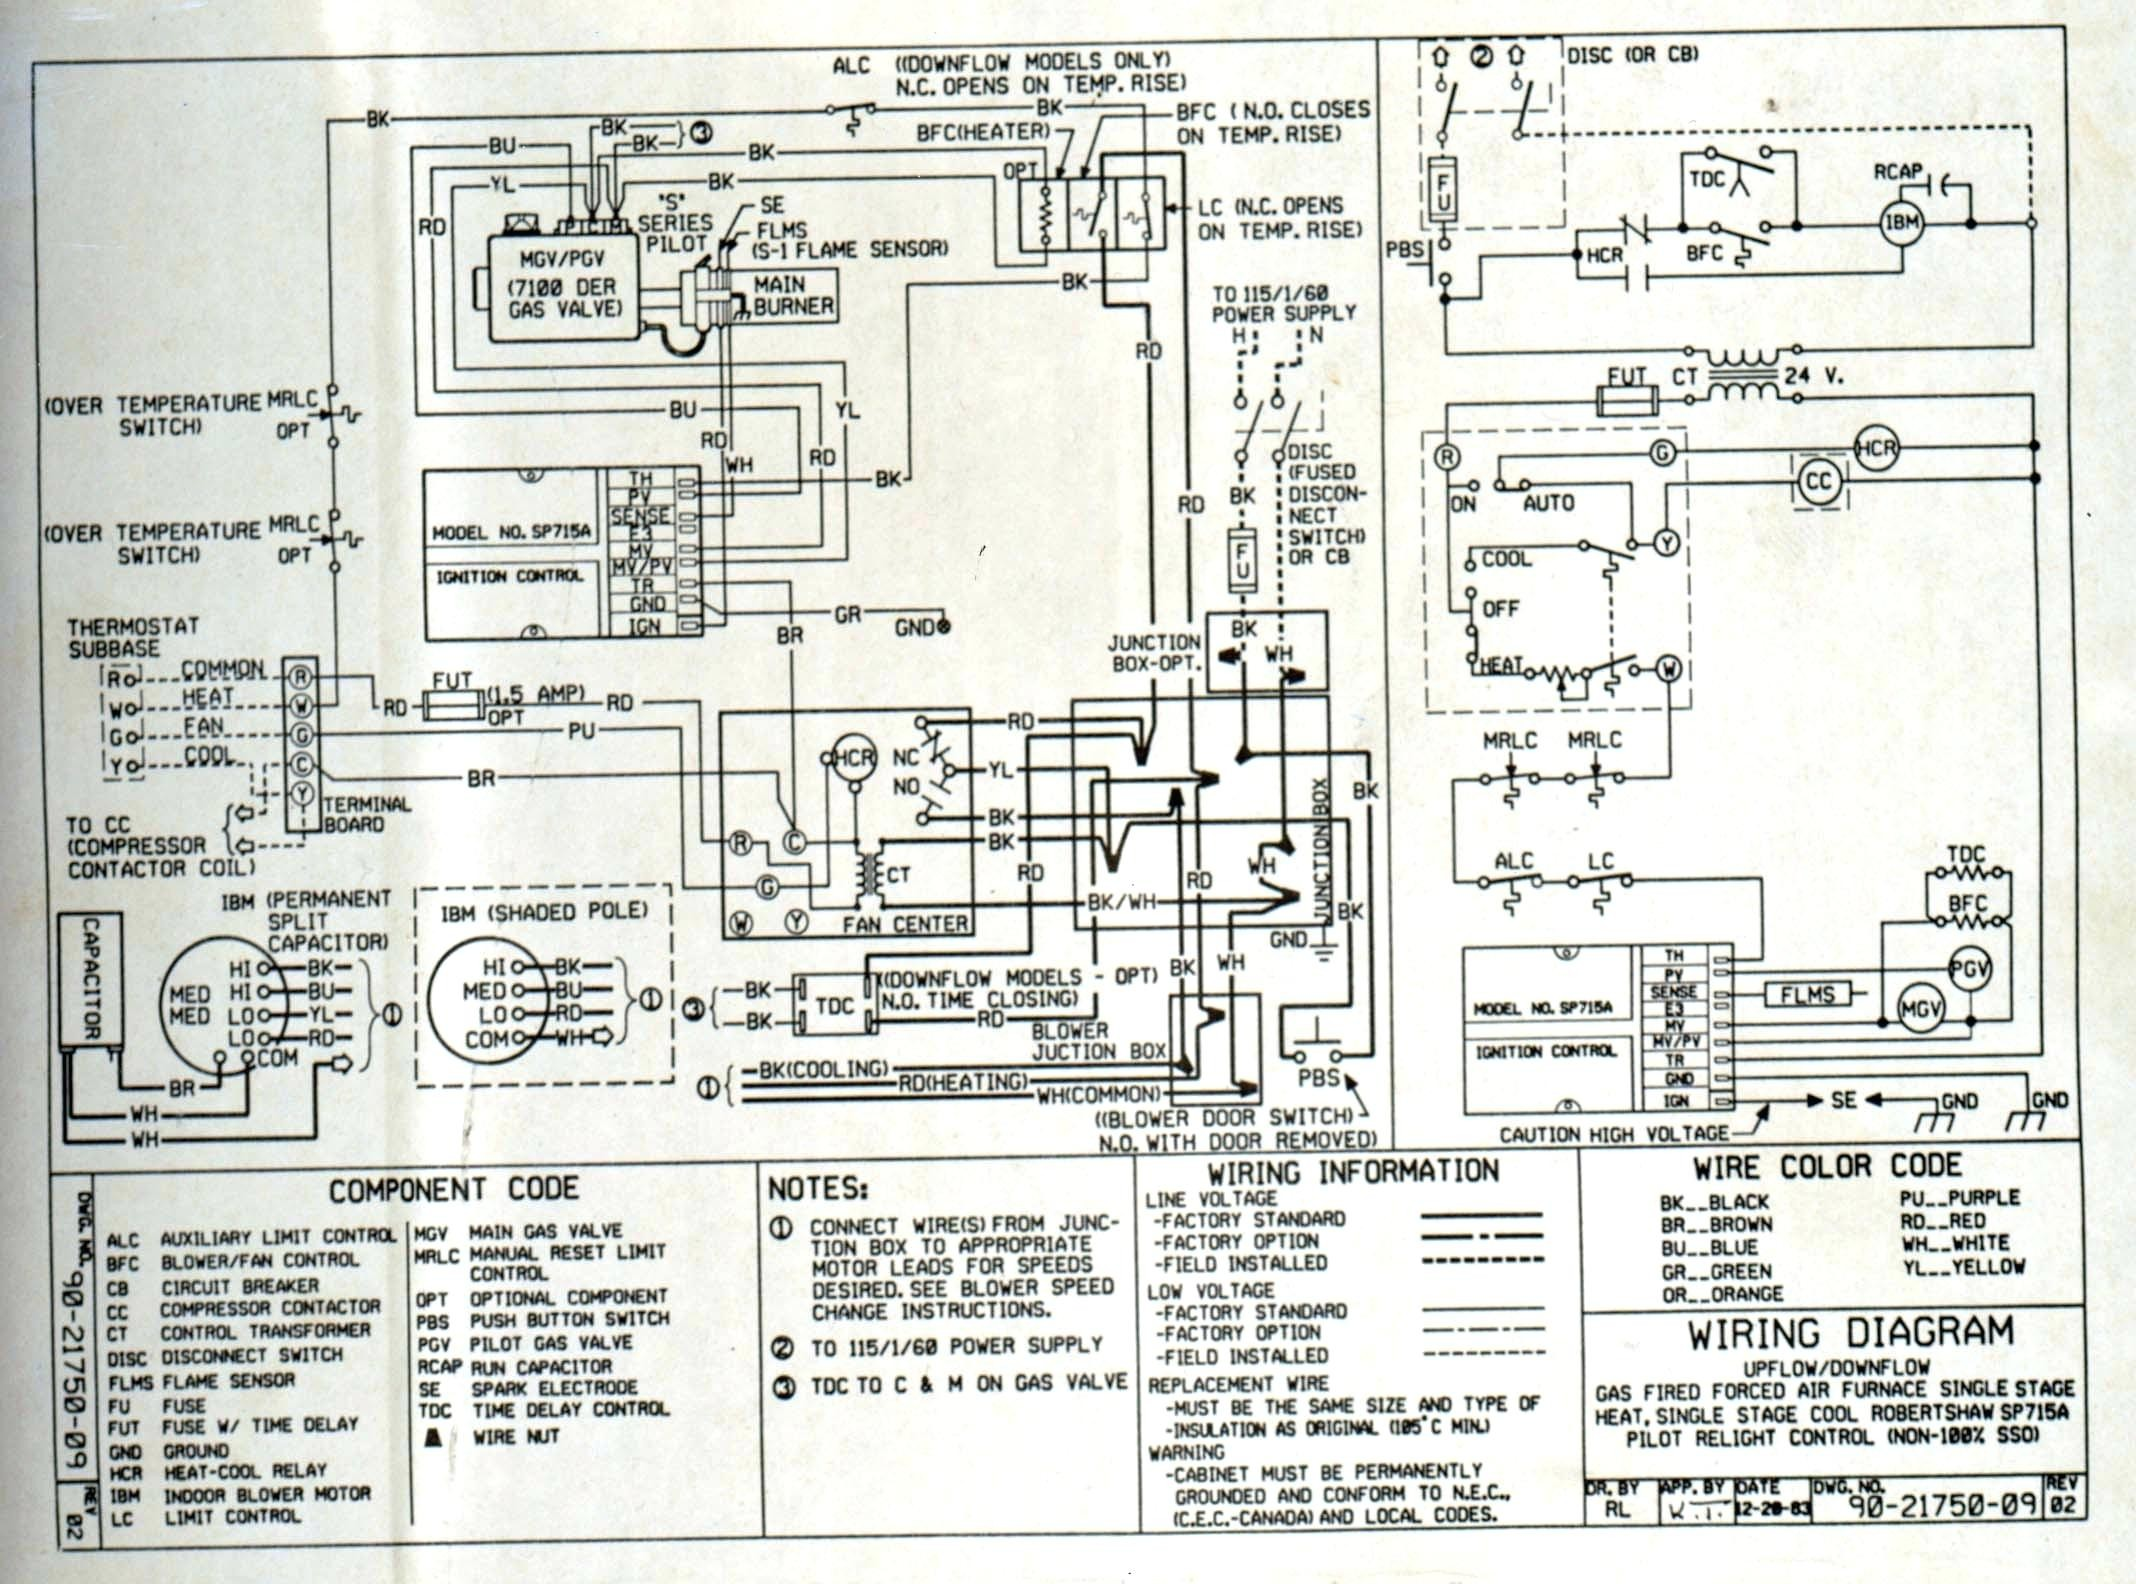 Full Size of Miller Mobile Home Furnace Wiring Diagram Electric For At Archived Wiring Diagram